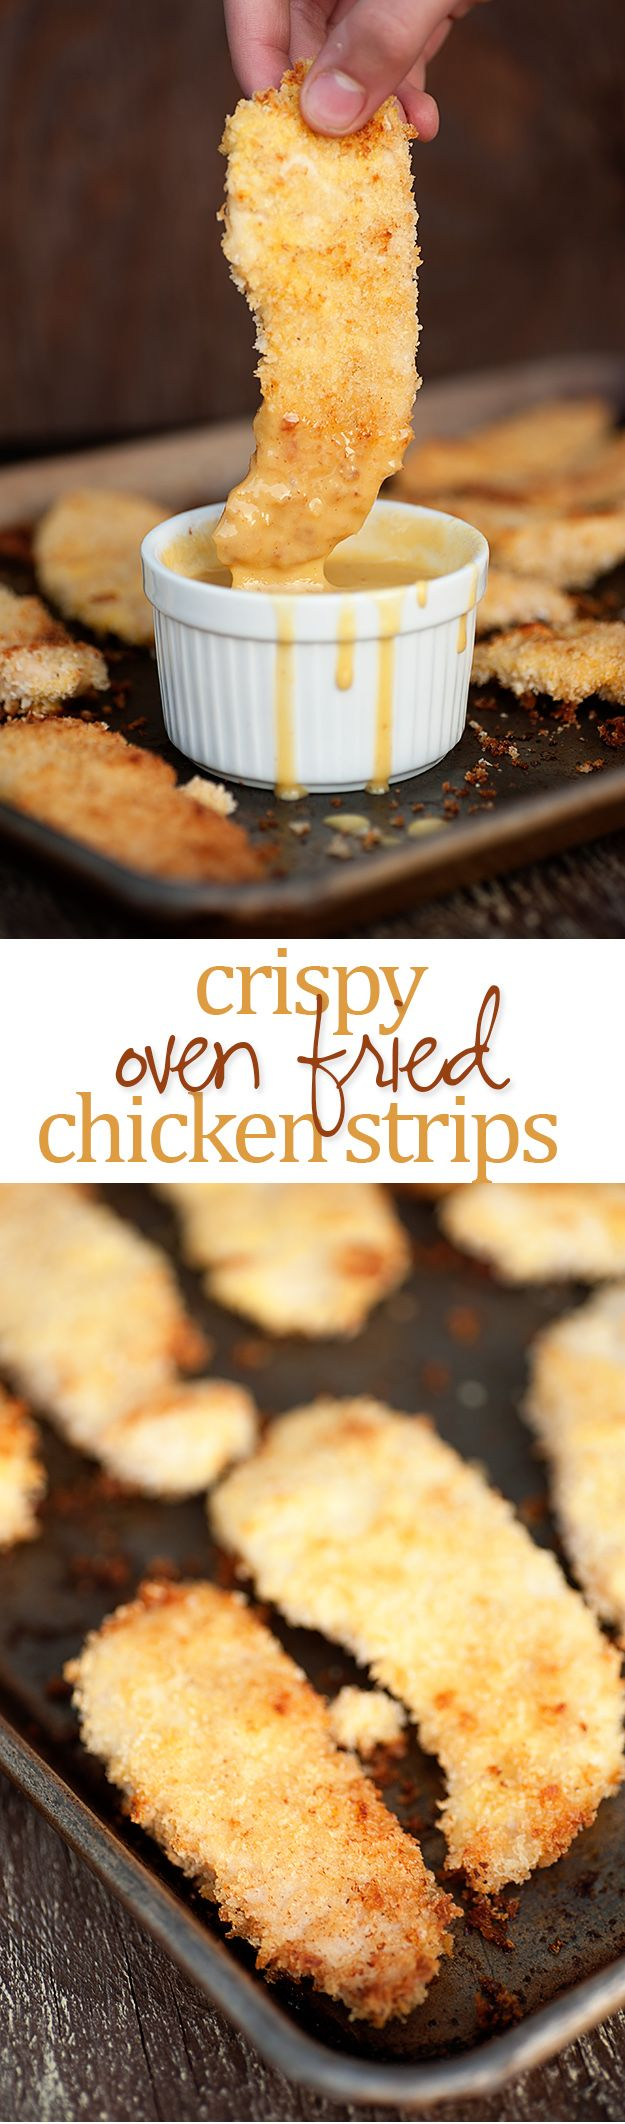 Oven Fried Chicken Strips Recipe